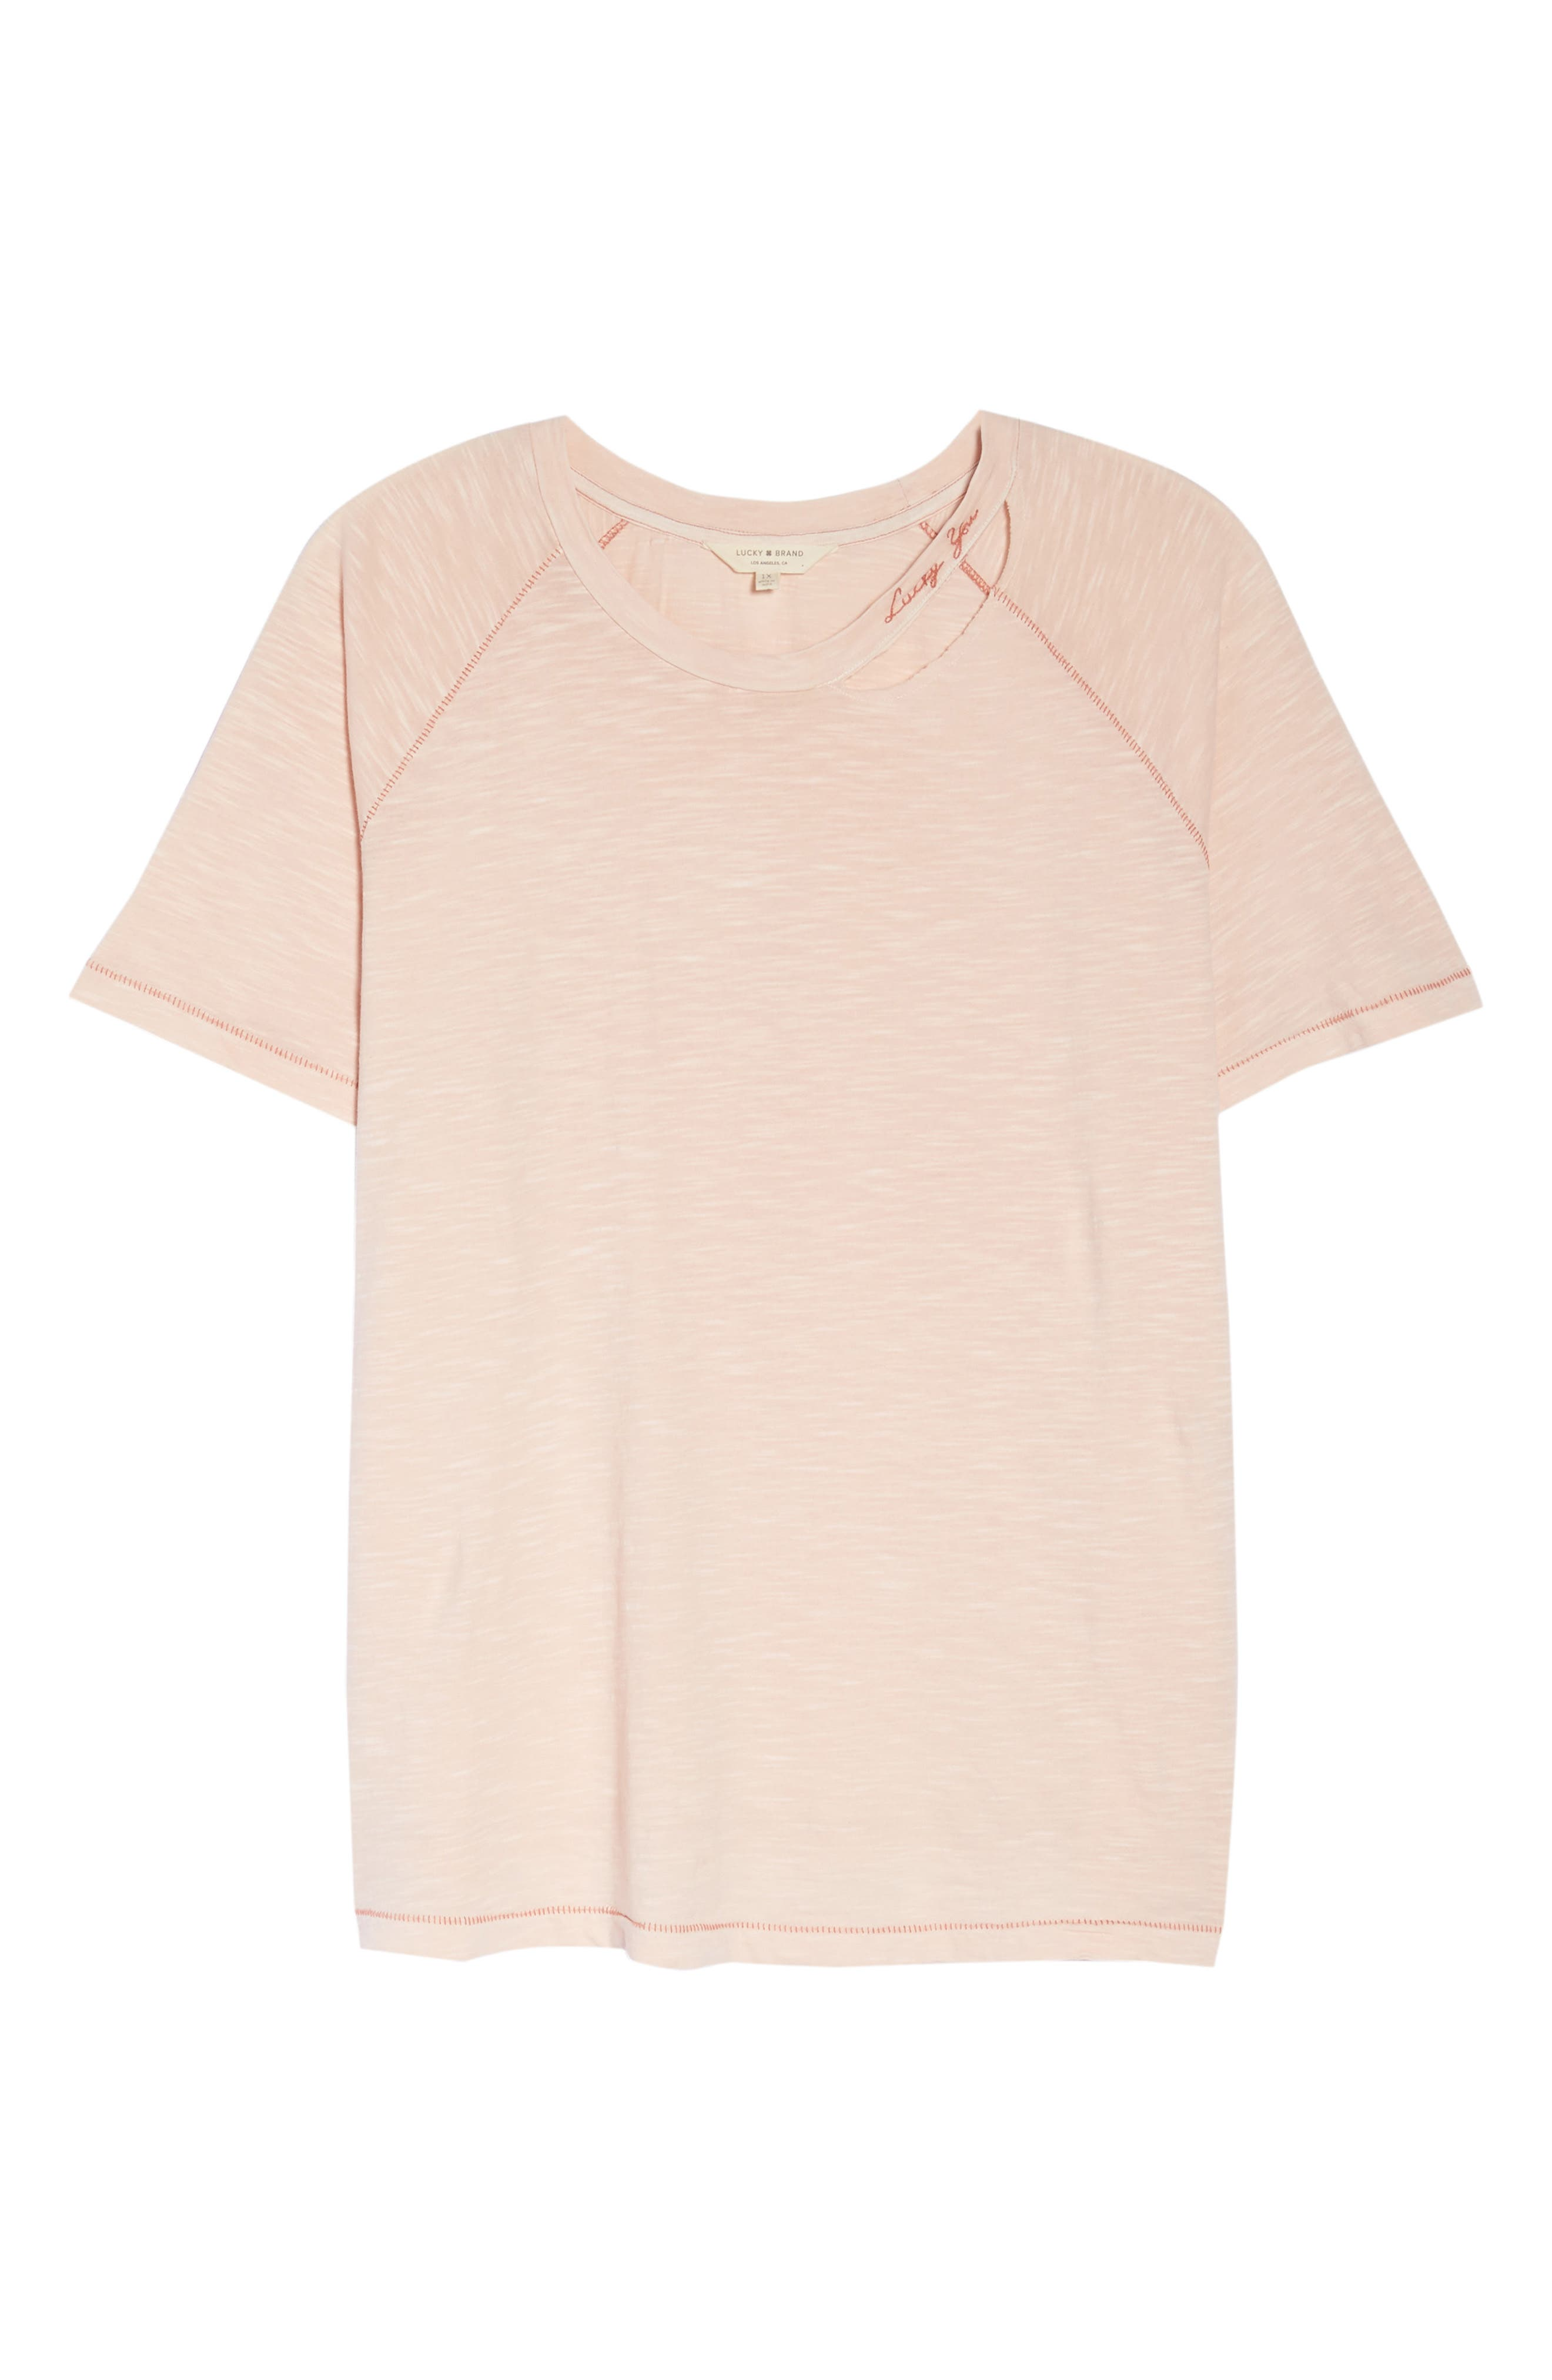 Lucky You Deconstructed Tee,                             Alternate thumbnail 7, color,                             Peach Whip